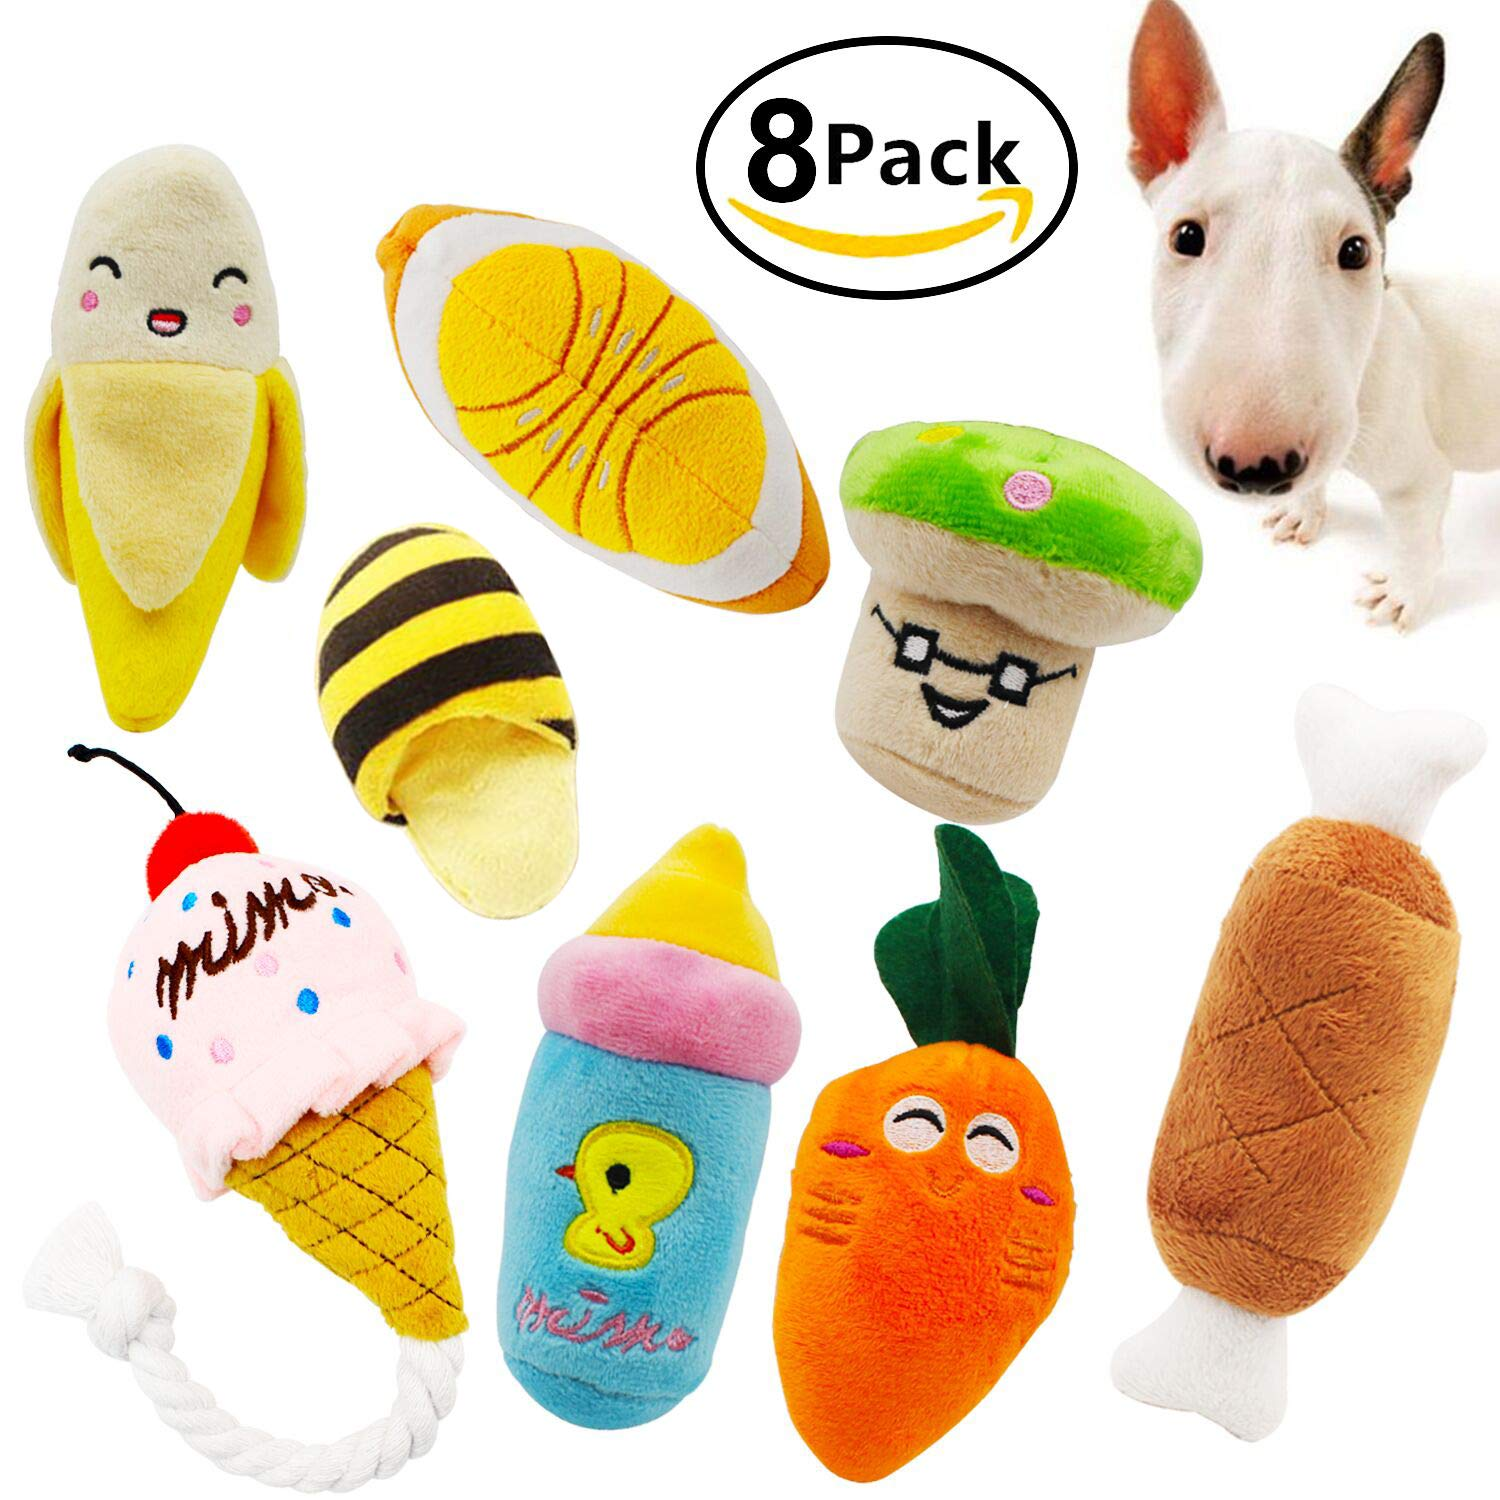 Squeaky Dog Toys Ulable Pet Puppy Plush Sound Chew Toy Set For Small Medium Dogs And Cats Colours Vary 8 Pack Co Uk Supplies